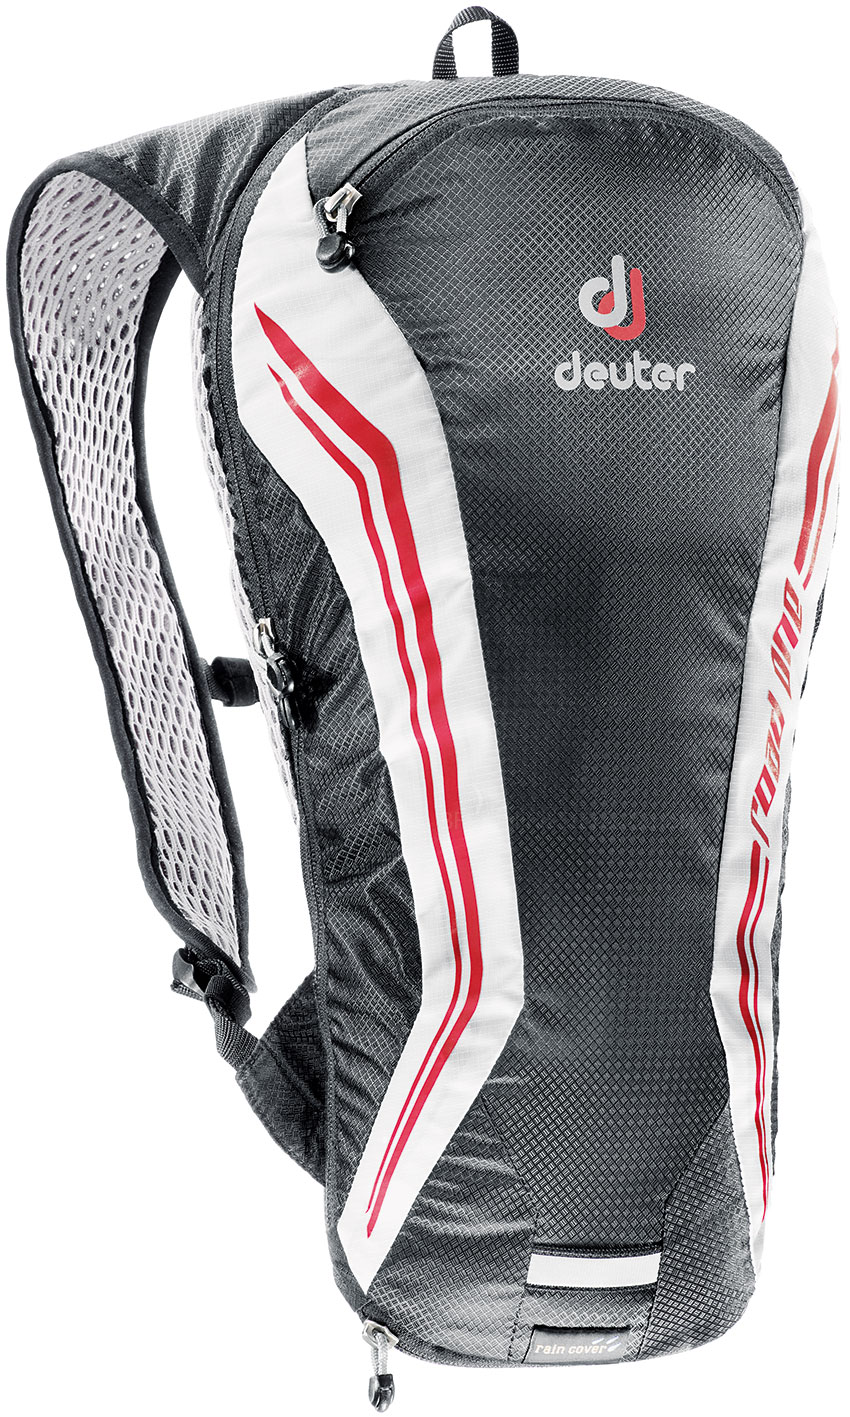 Deuter - Road One black-white - Bike Backpacks -